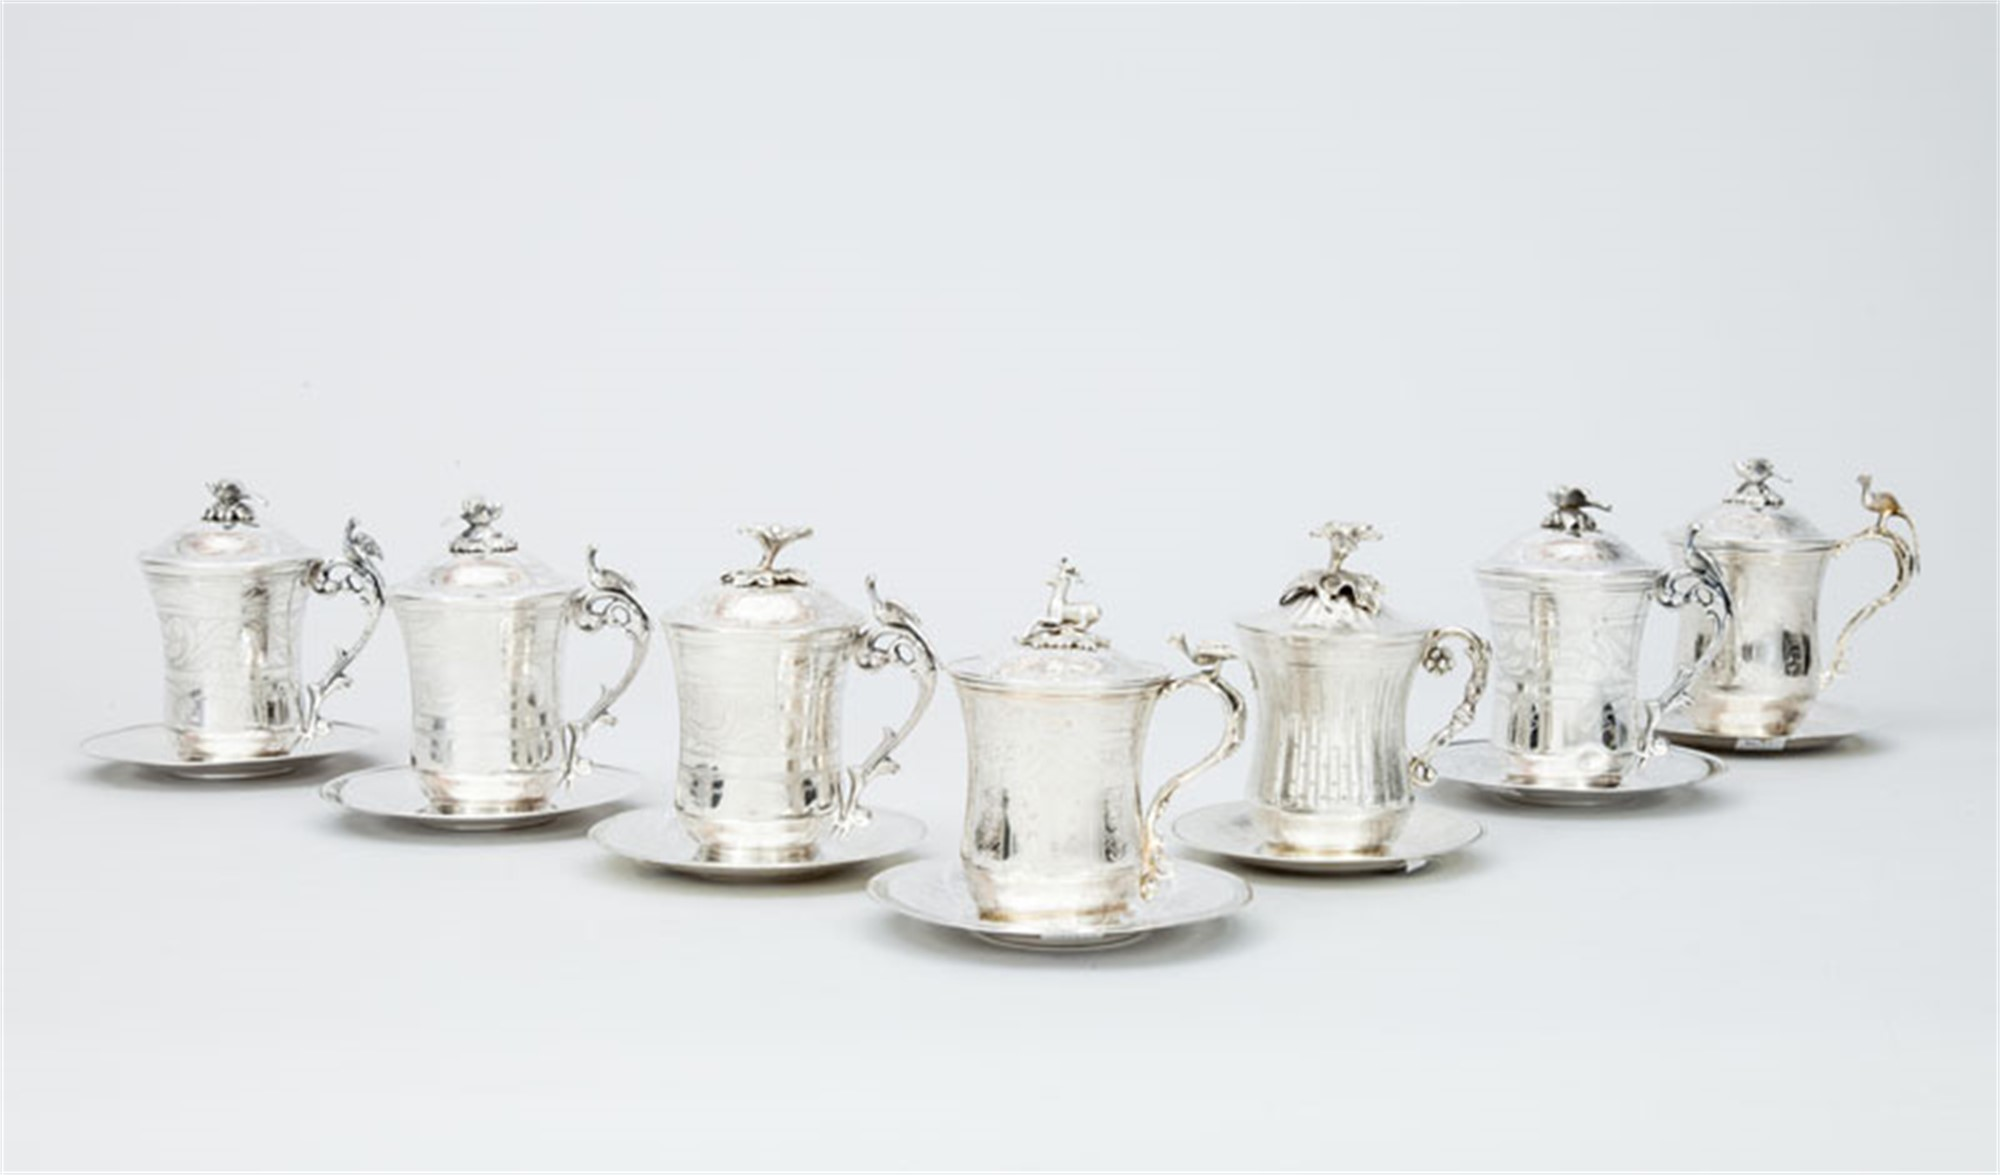 GROUP OF SEVEN STERLING SILVER TANKARDS WITH LIDS AND SAUCERS